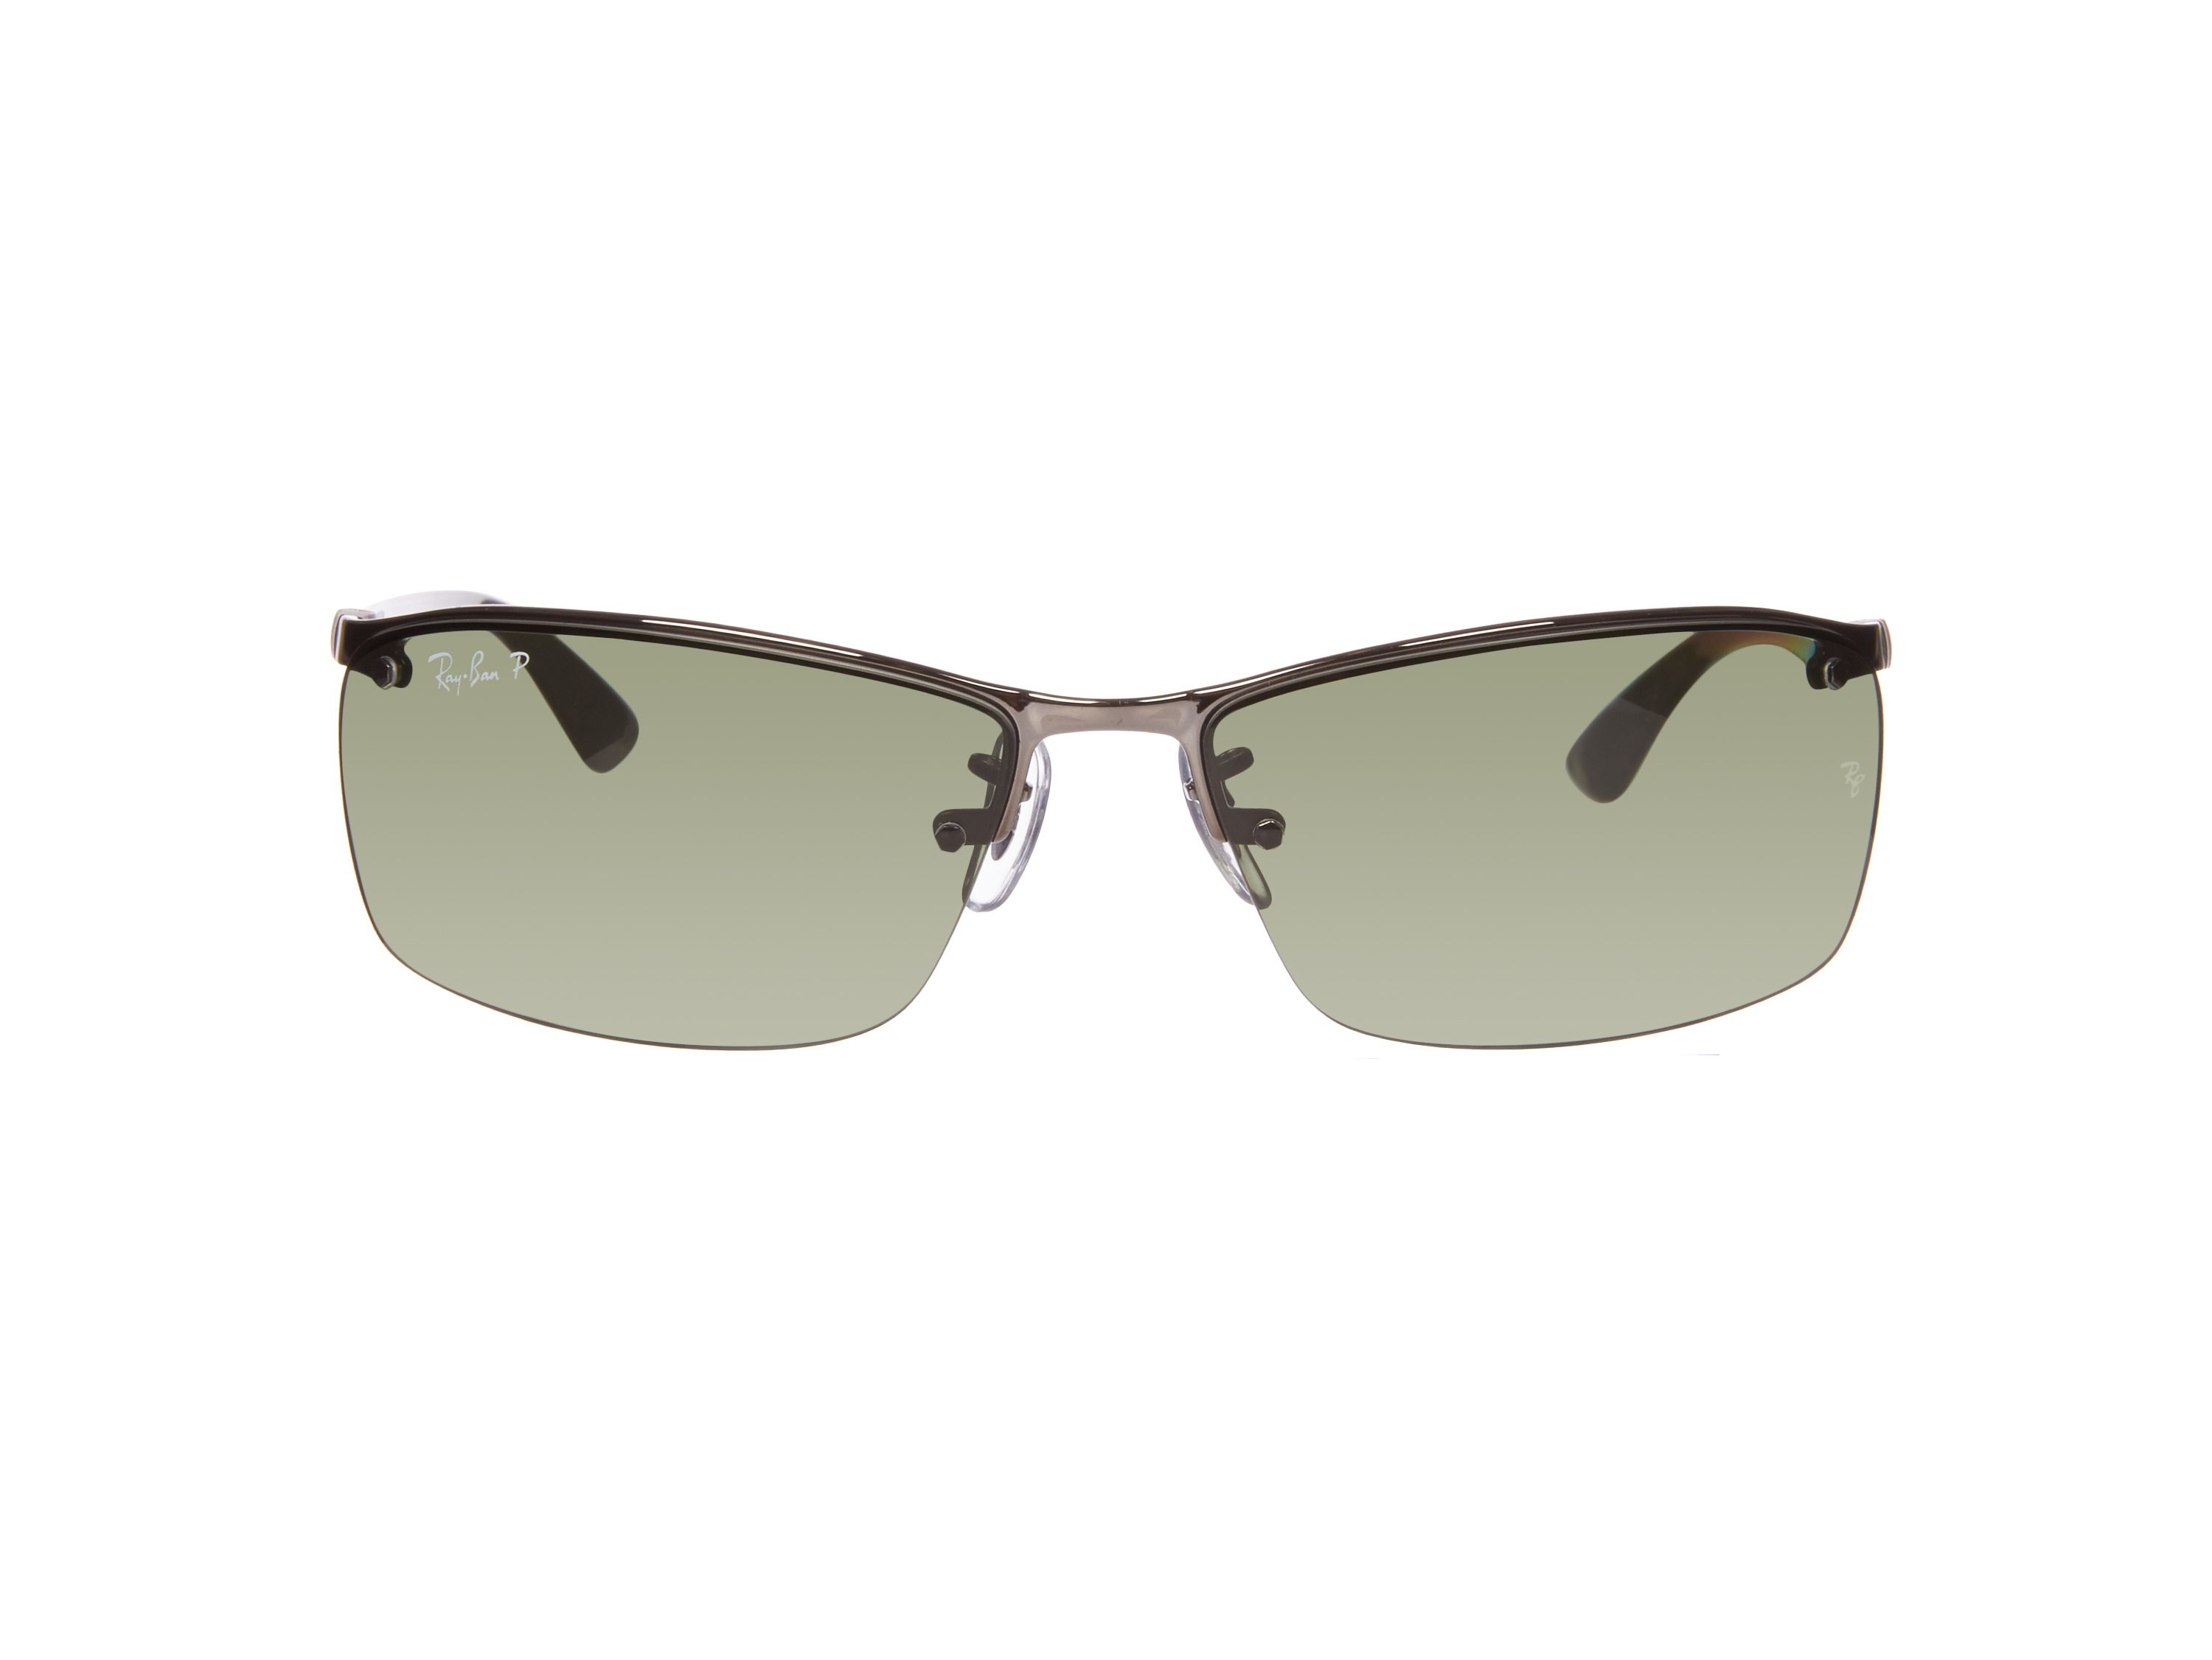 Rb8315 men`s rectangle sunglasses